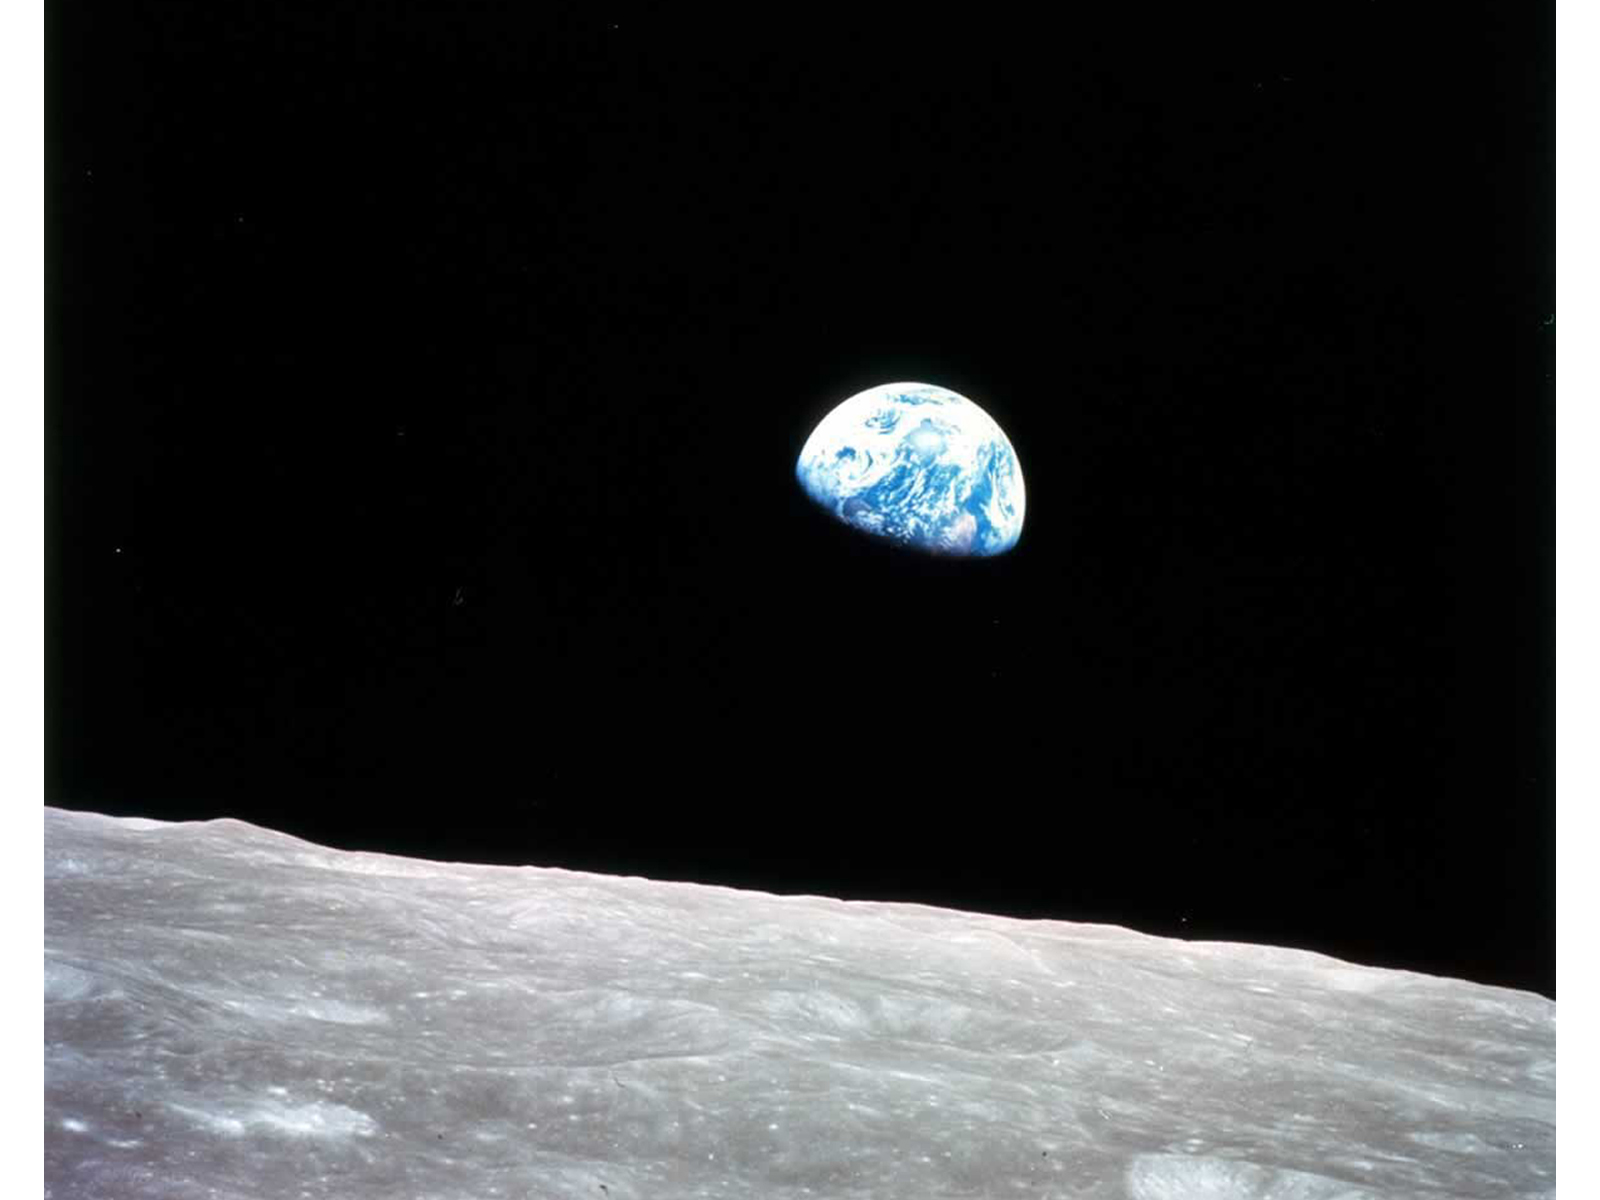 https://i1.wp.com/www.nasa.gov/images/content/261376main_31_Earthrise2.jpg